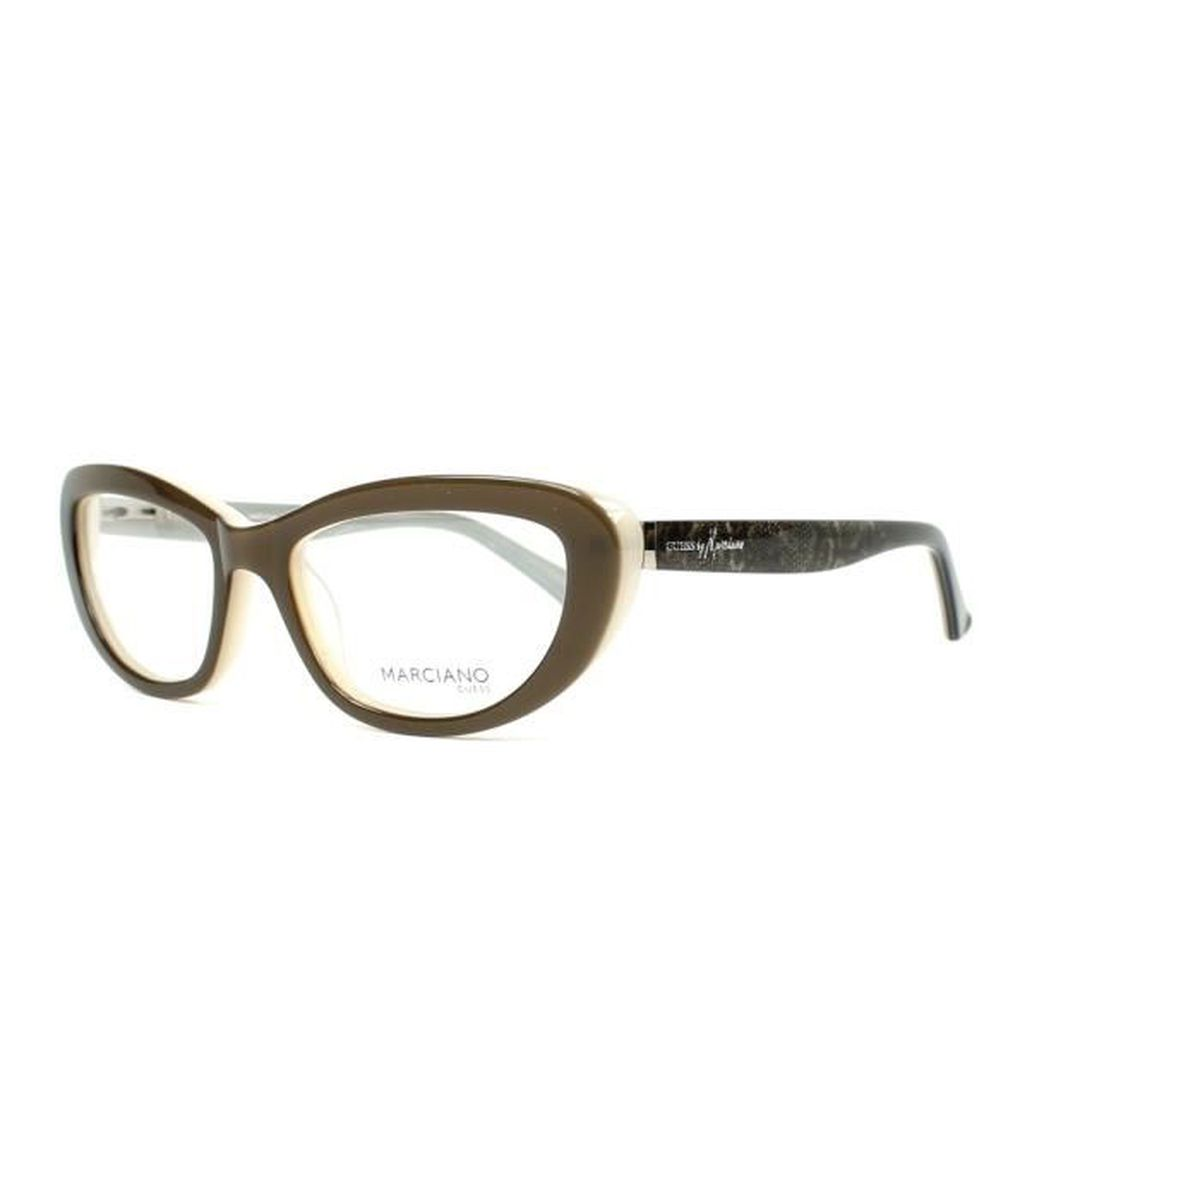 Lunettes de vue Guess by Marciano GM221 -GRY Marron olive - Gris ... fb708fe4cedb